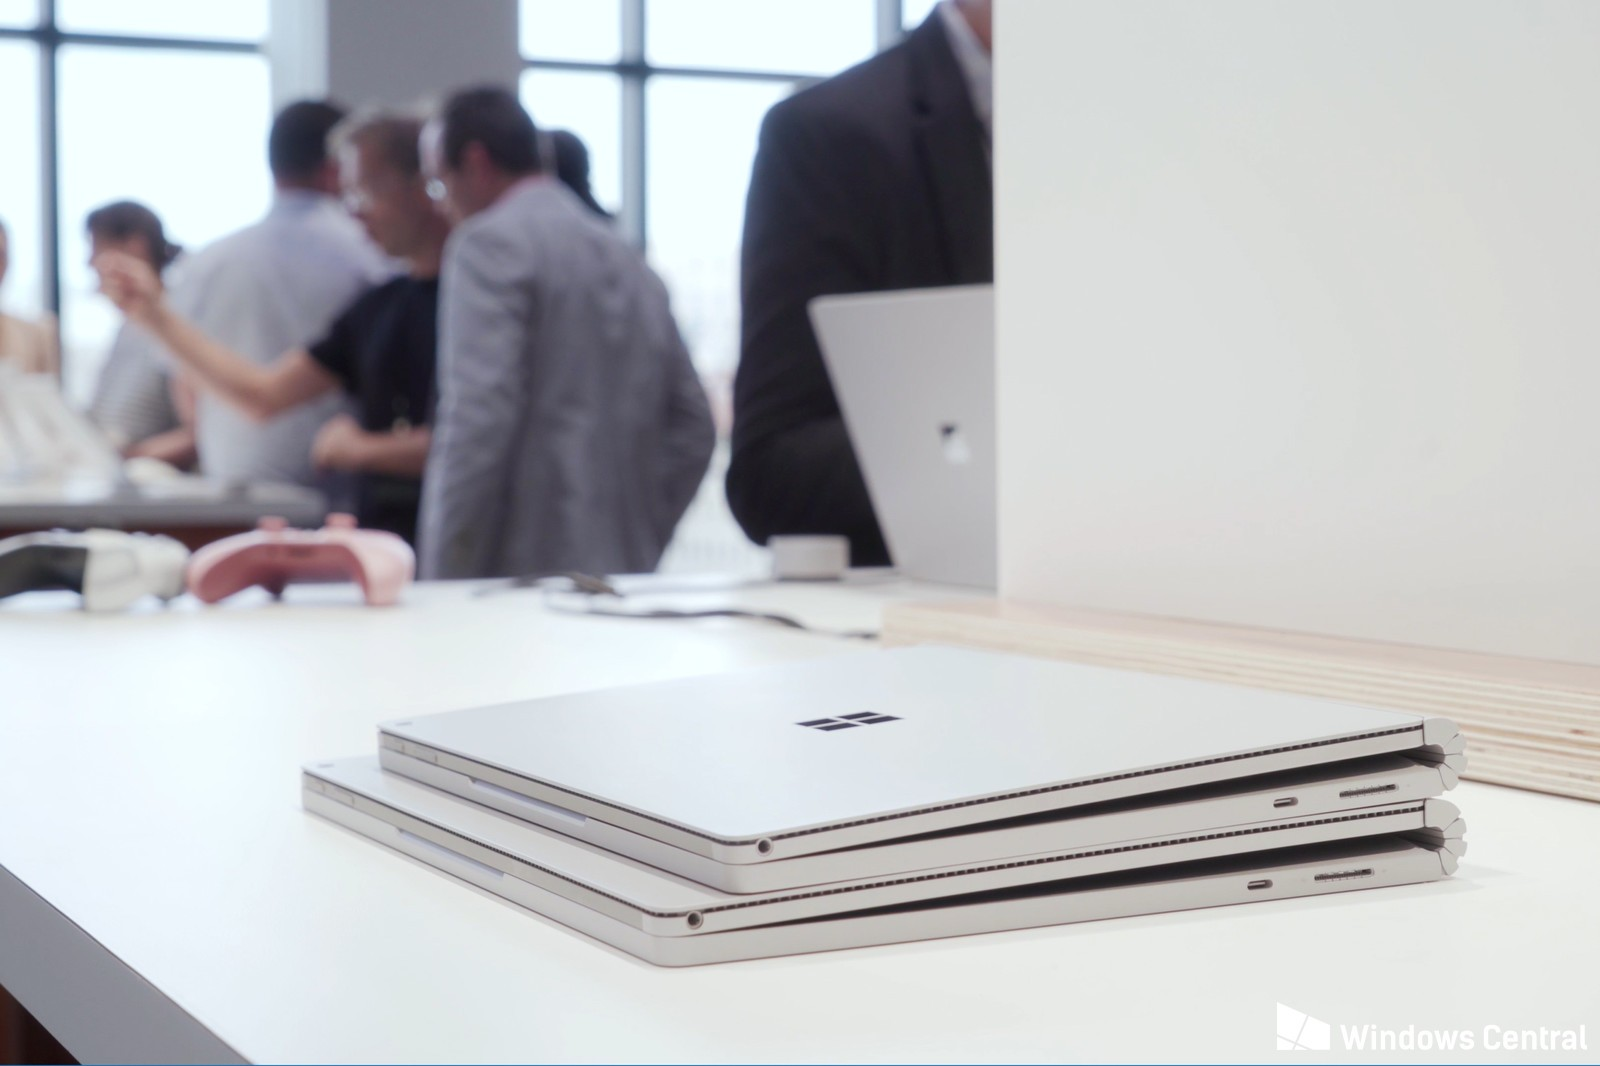 SURFACE BOOK 1 CORE I7 RAM 16GB SSD 512GB-12.jpg